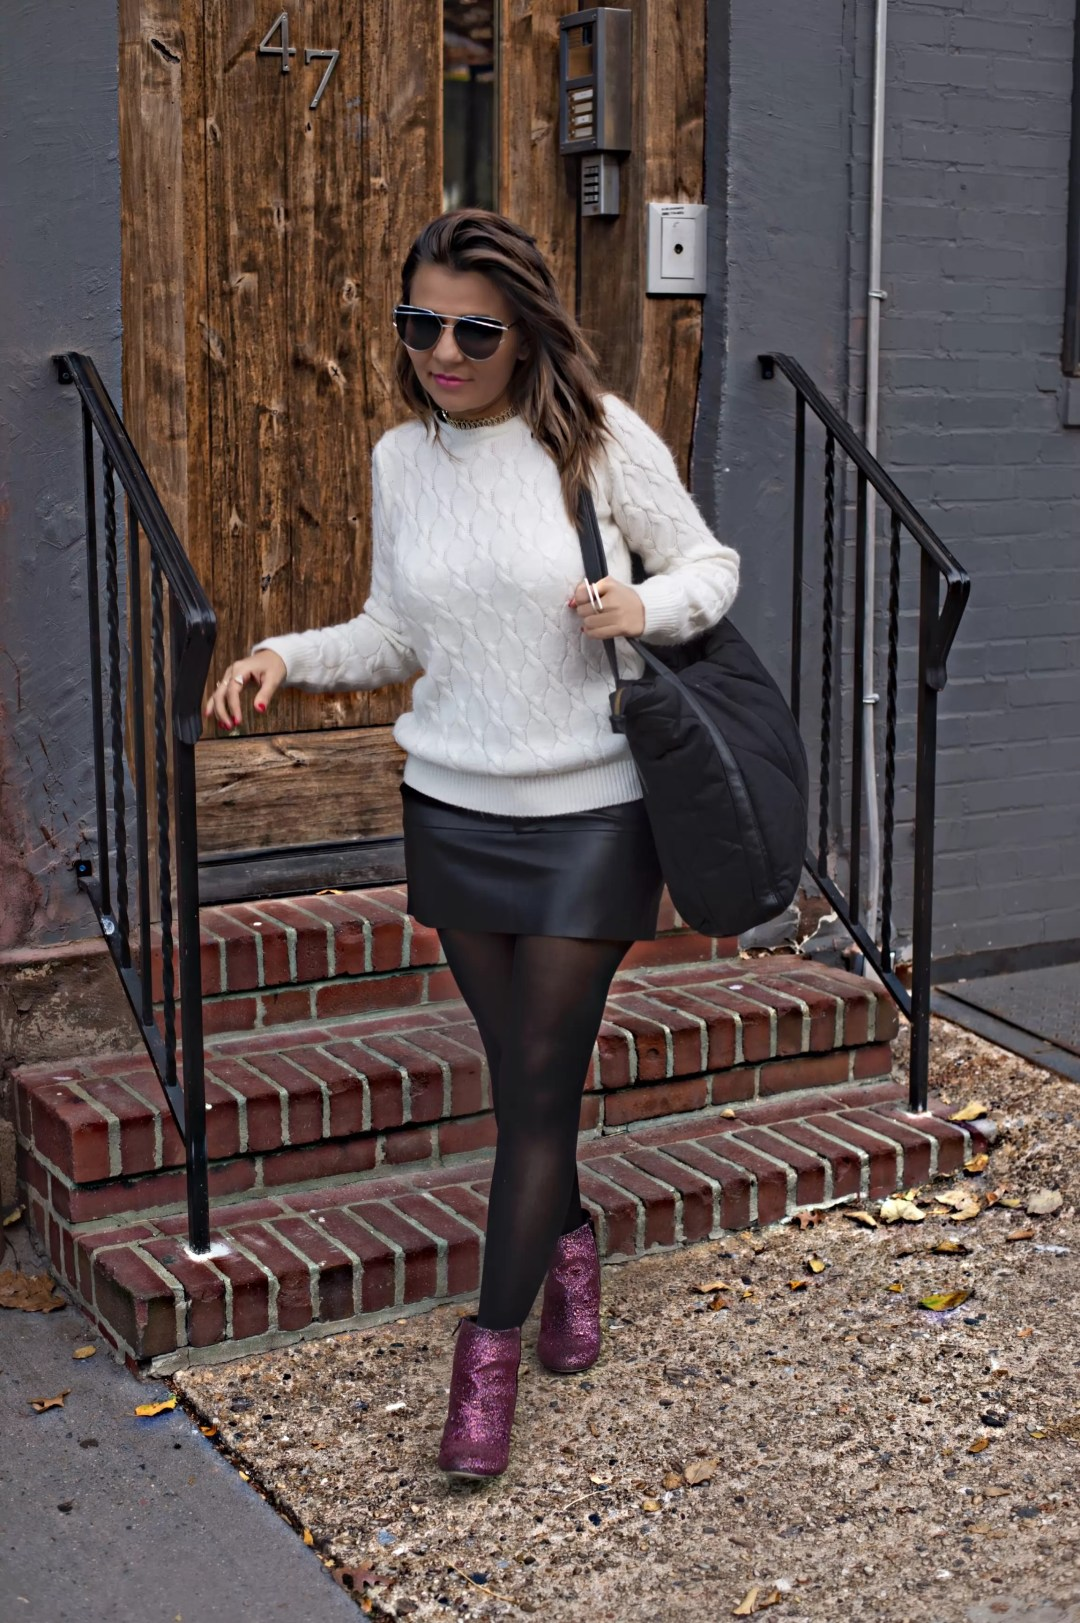 sparkle-boots-leather-skirts-alley-girl-betul-yildiz-new-york-fashion-blogger